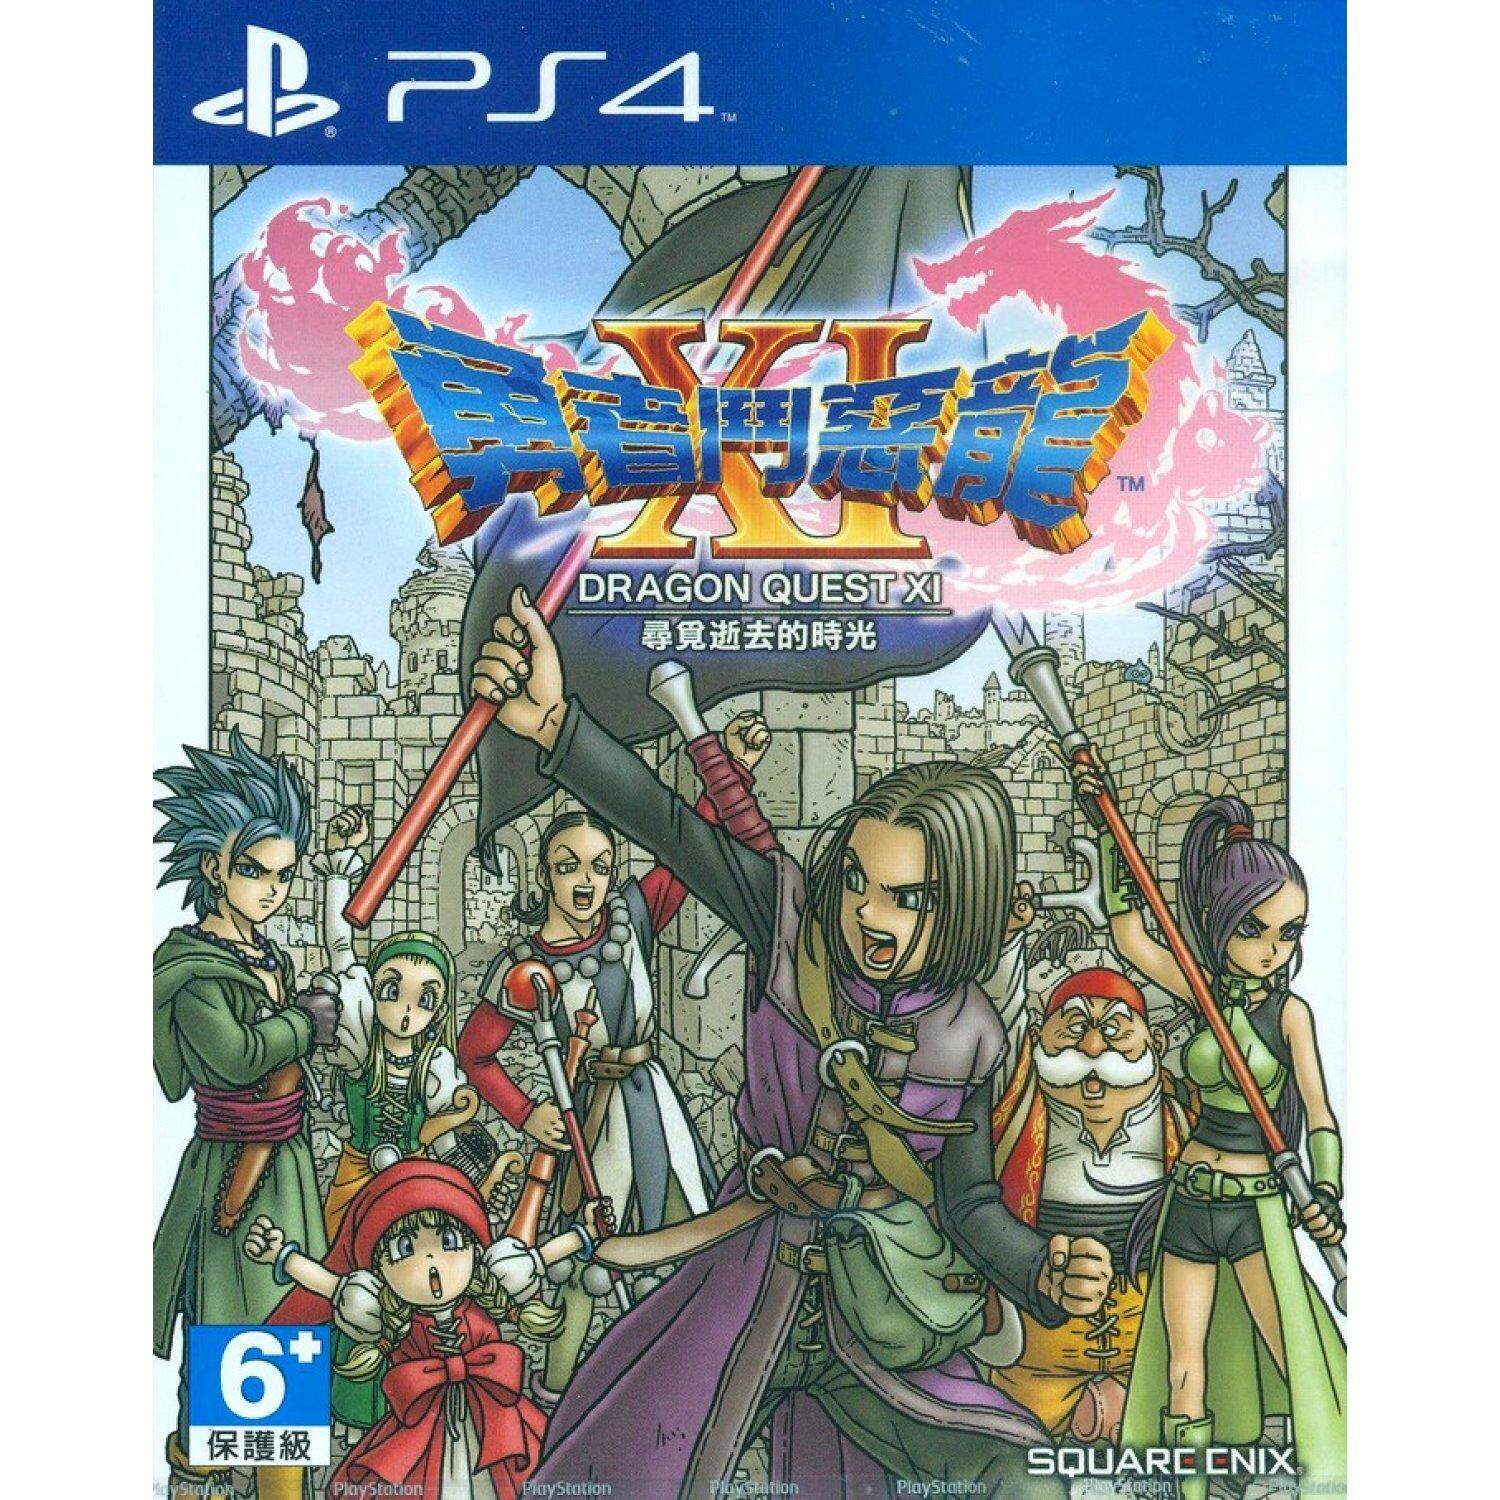 PS4 Dragon Quest XI Z3 Asia Eng Version